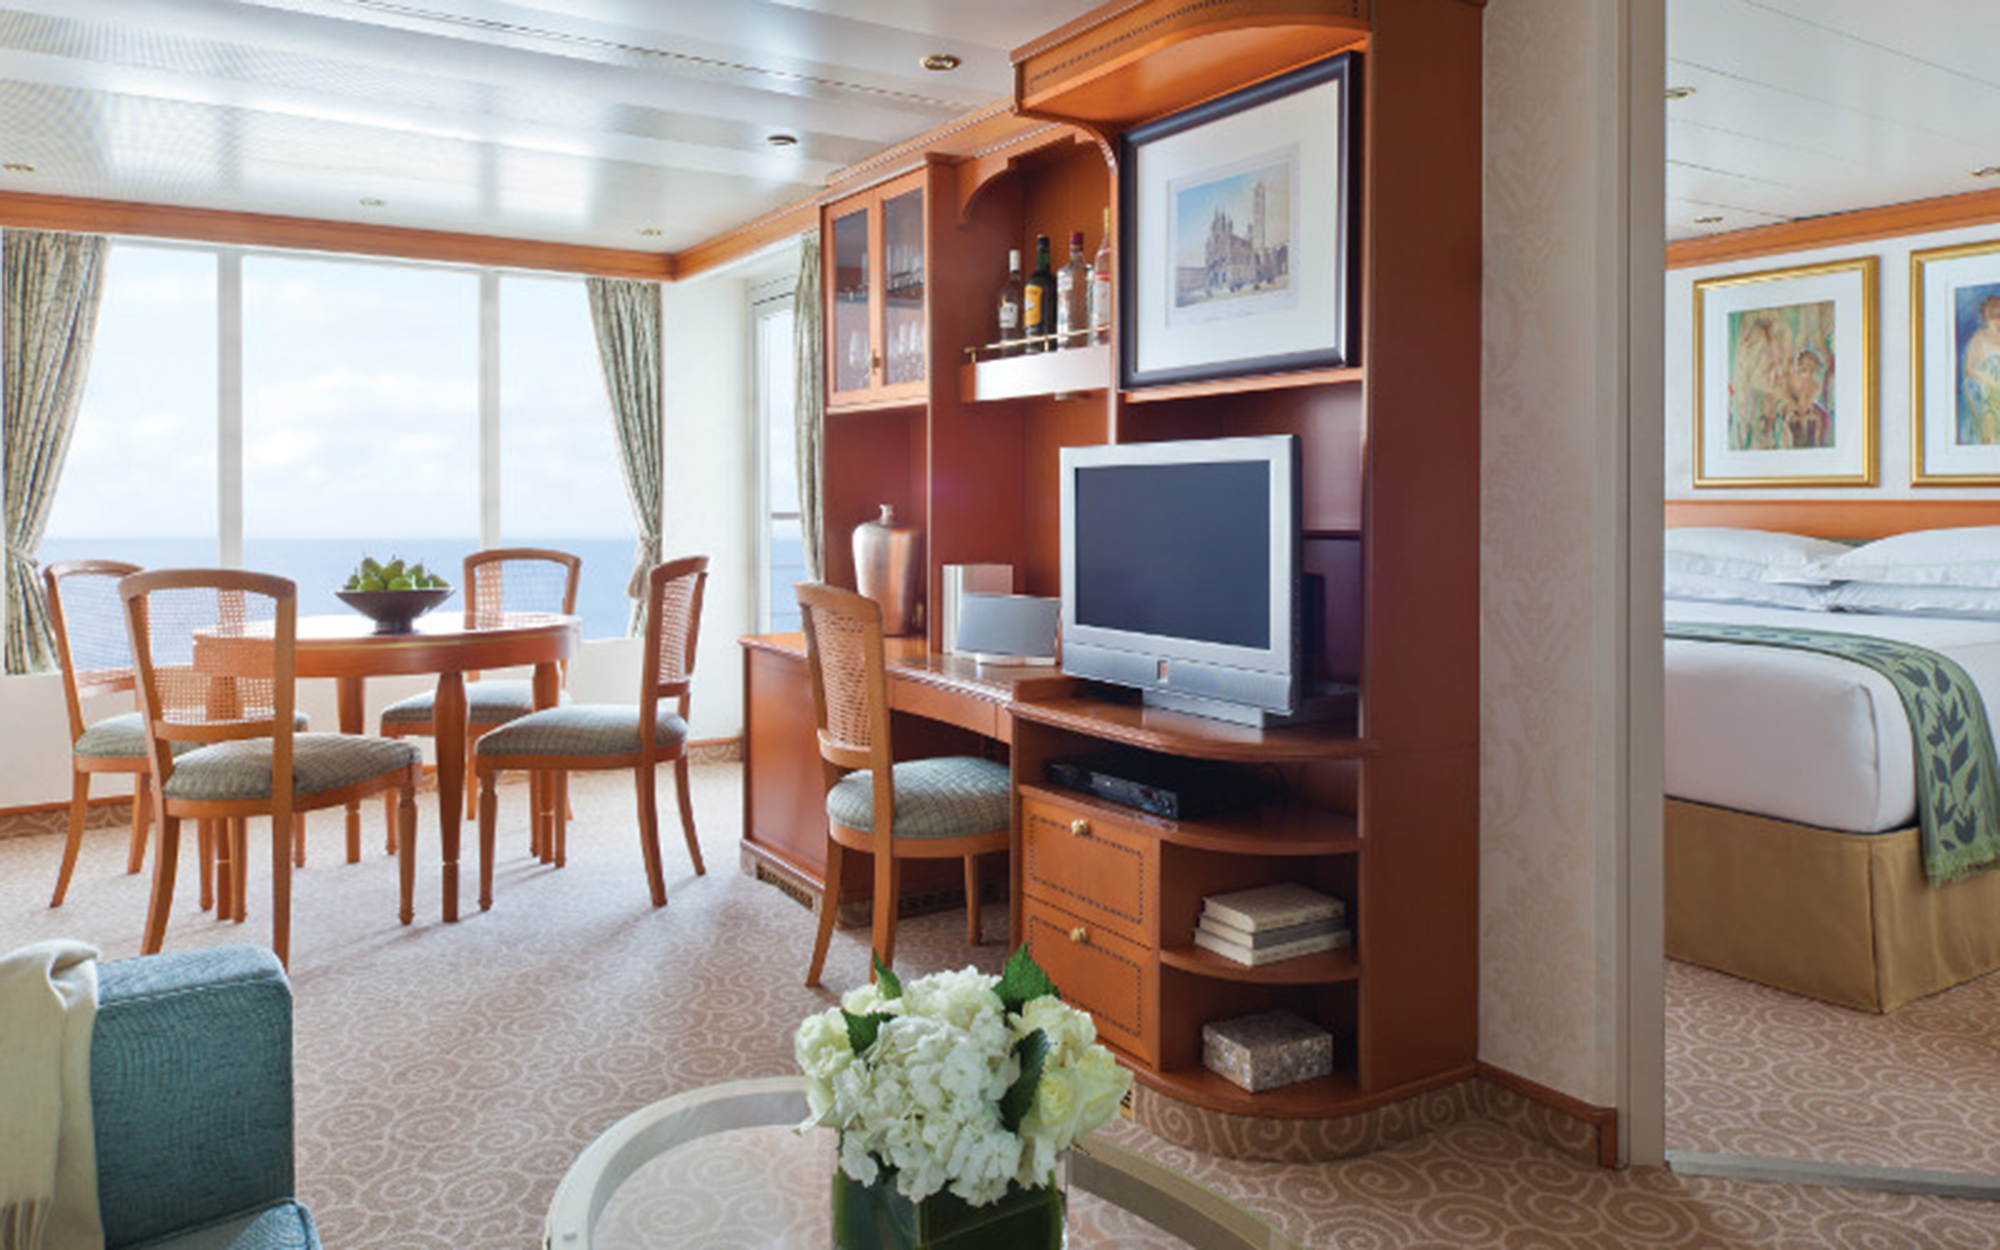 World's Best Cruise Lines for Families: Regent Seven Seas Cruises